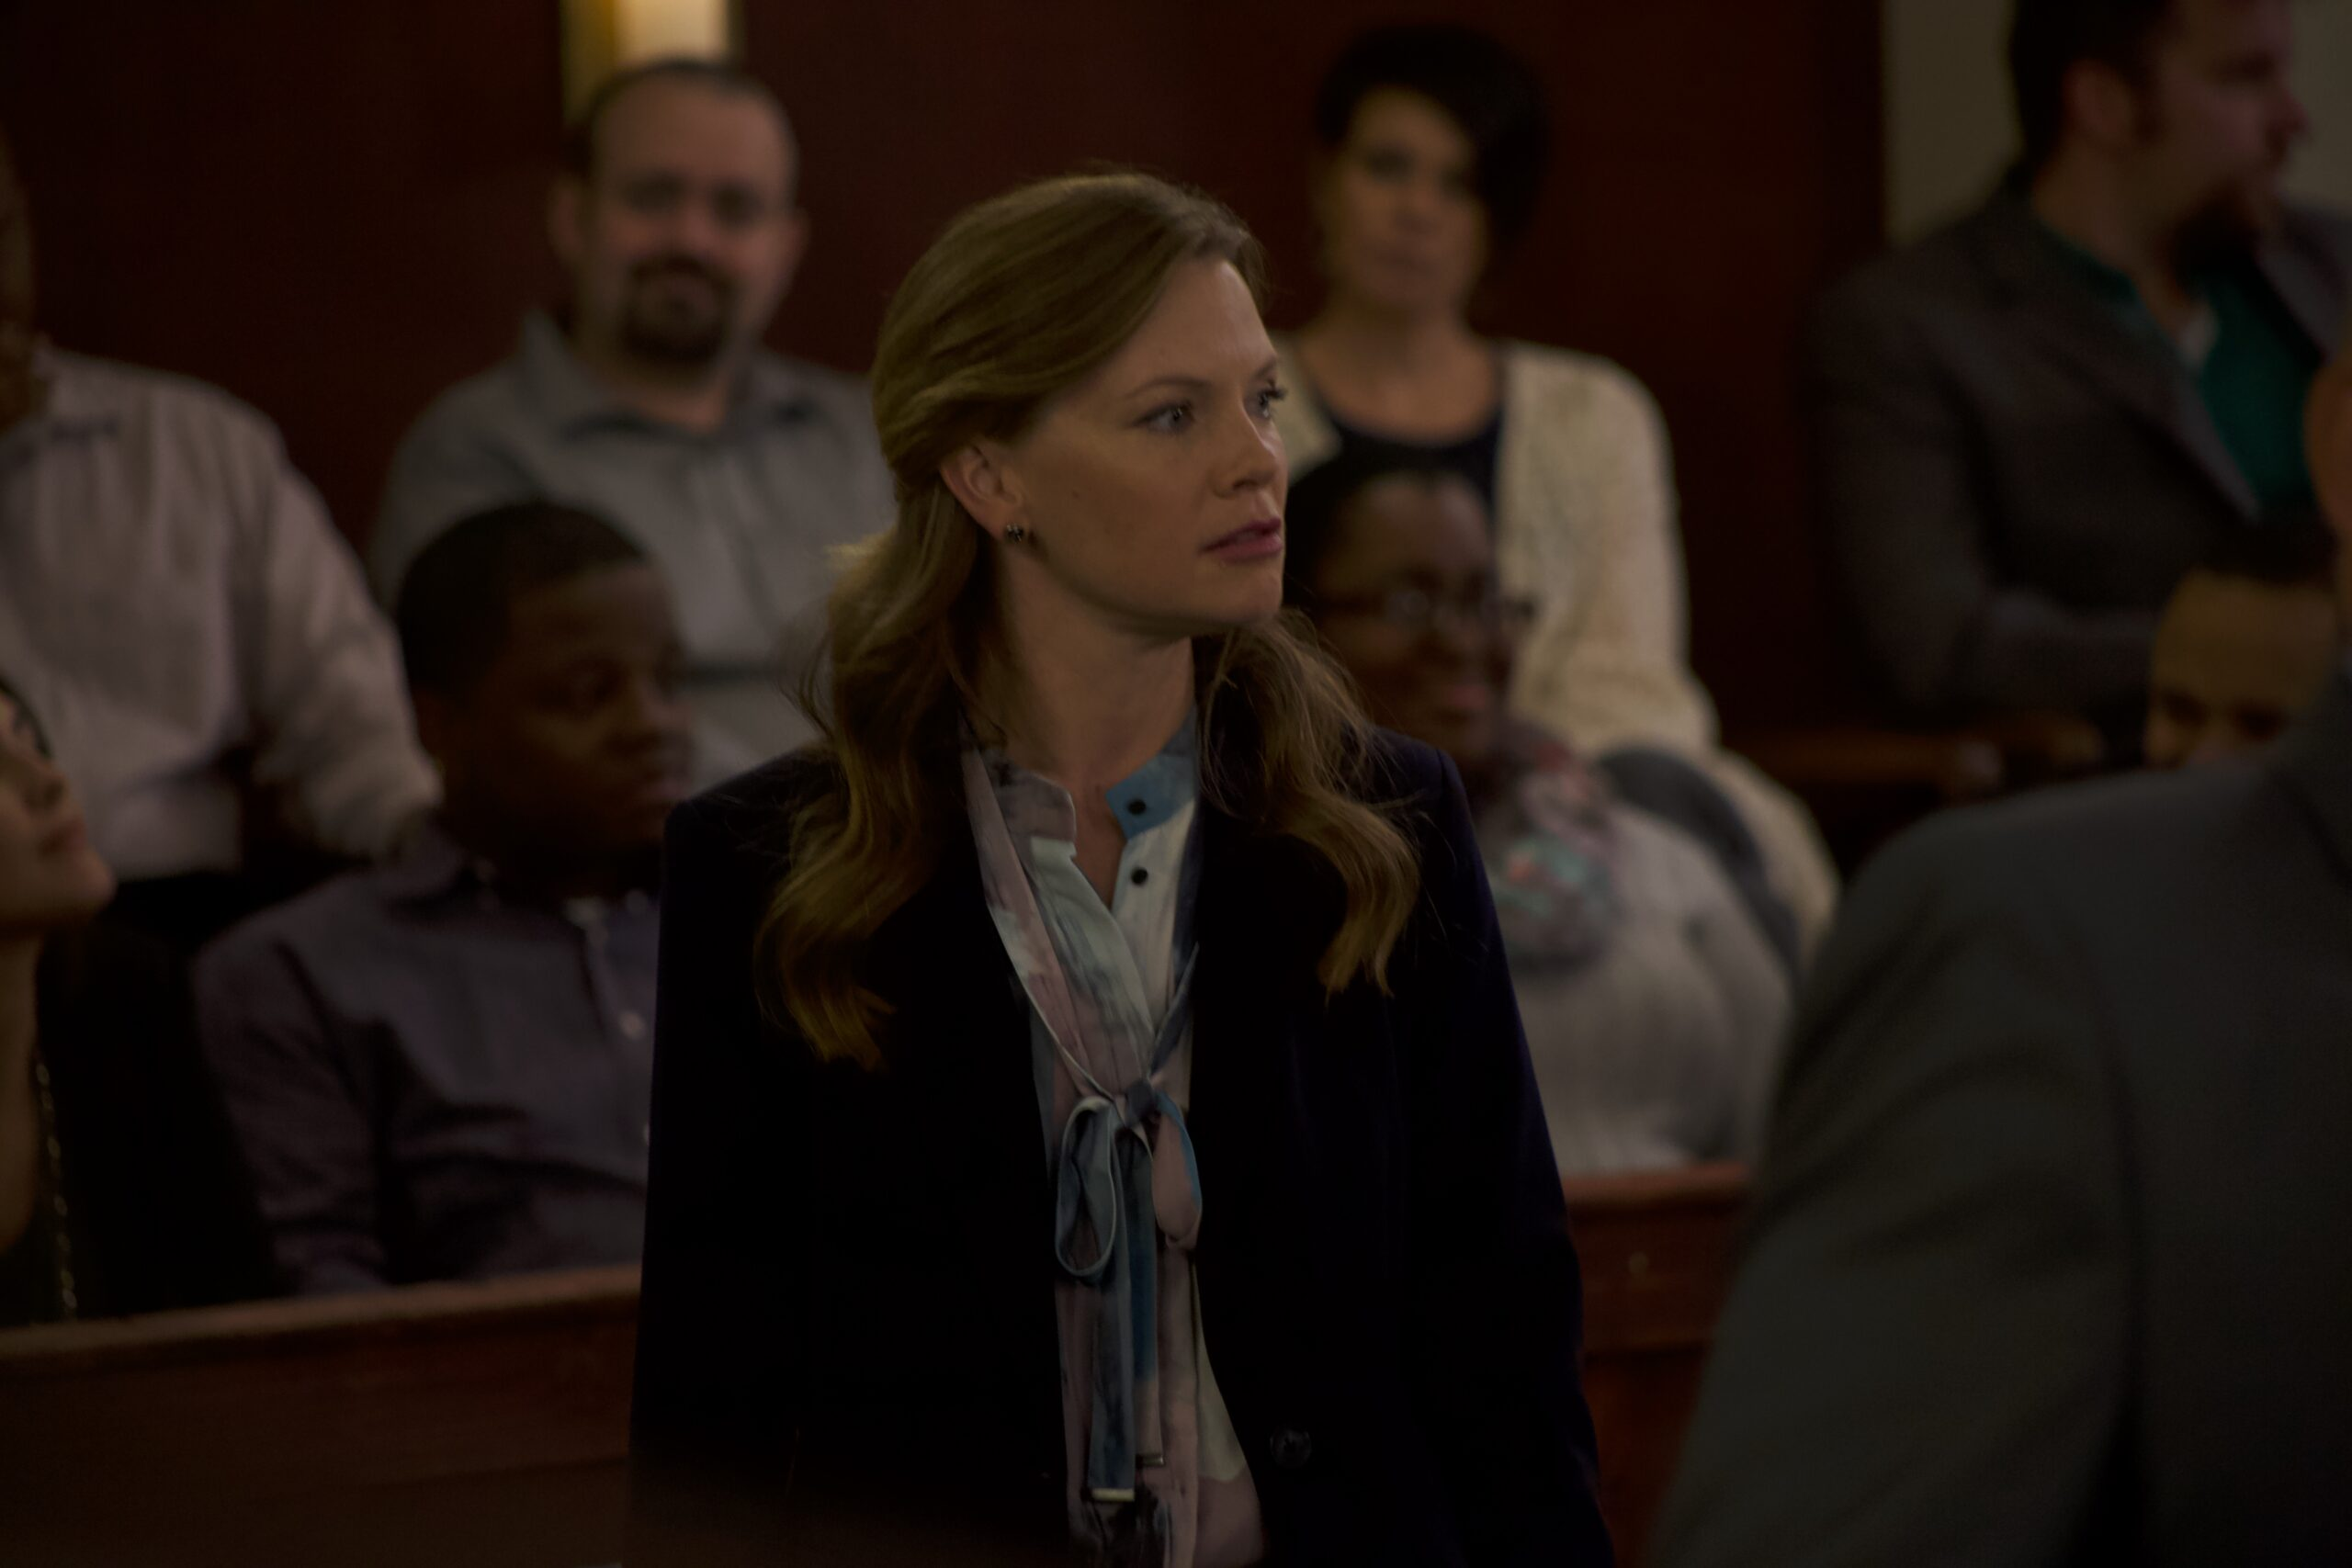 Sarah Jane Morris as Assistant District Attorney Lexi McGuire gosnellmovie.com